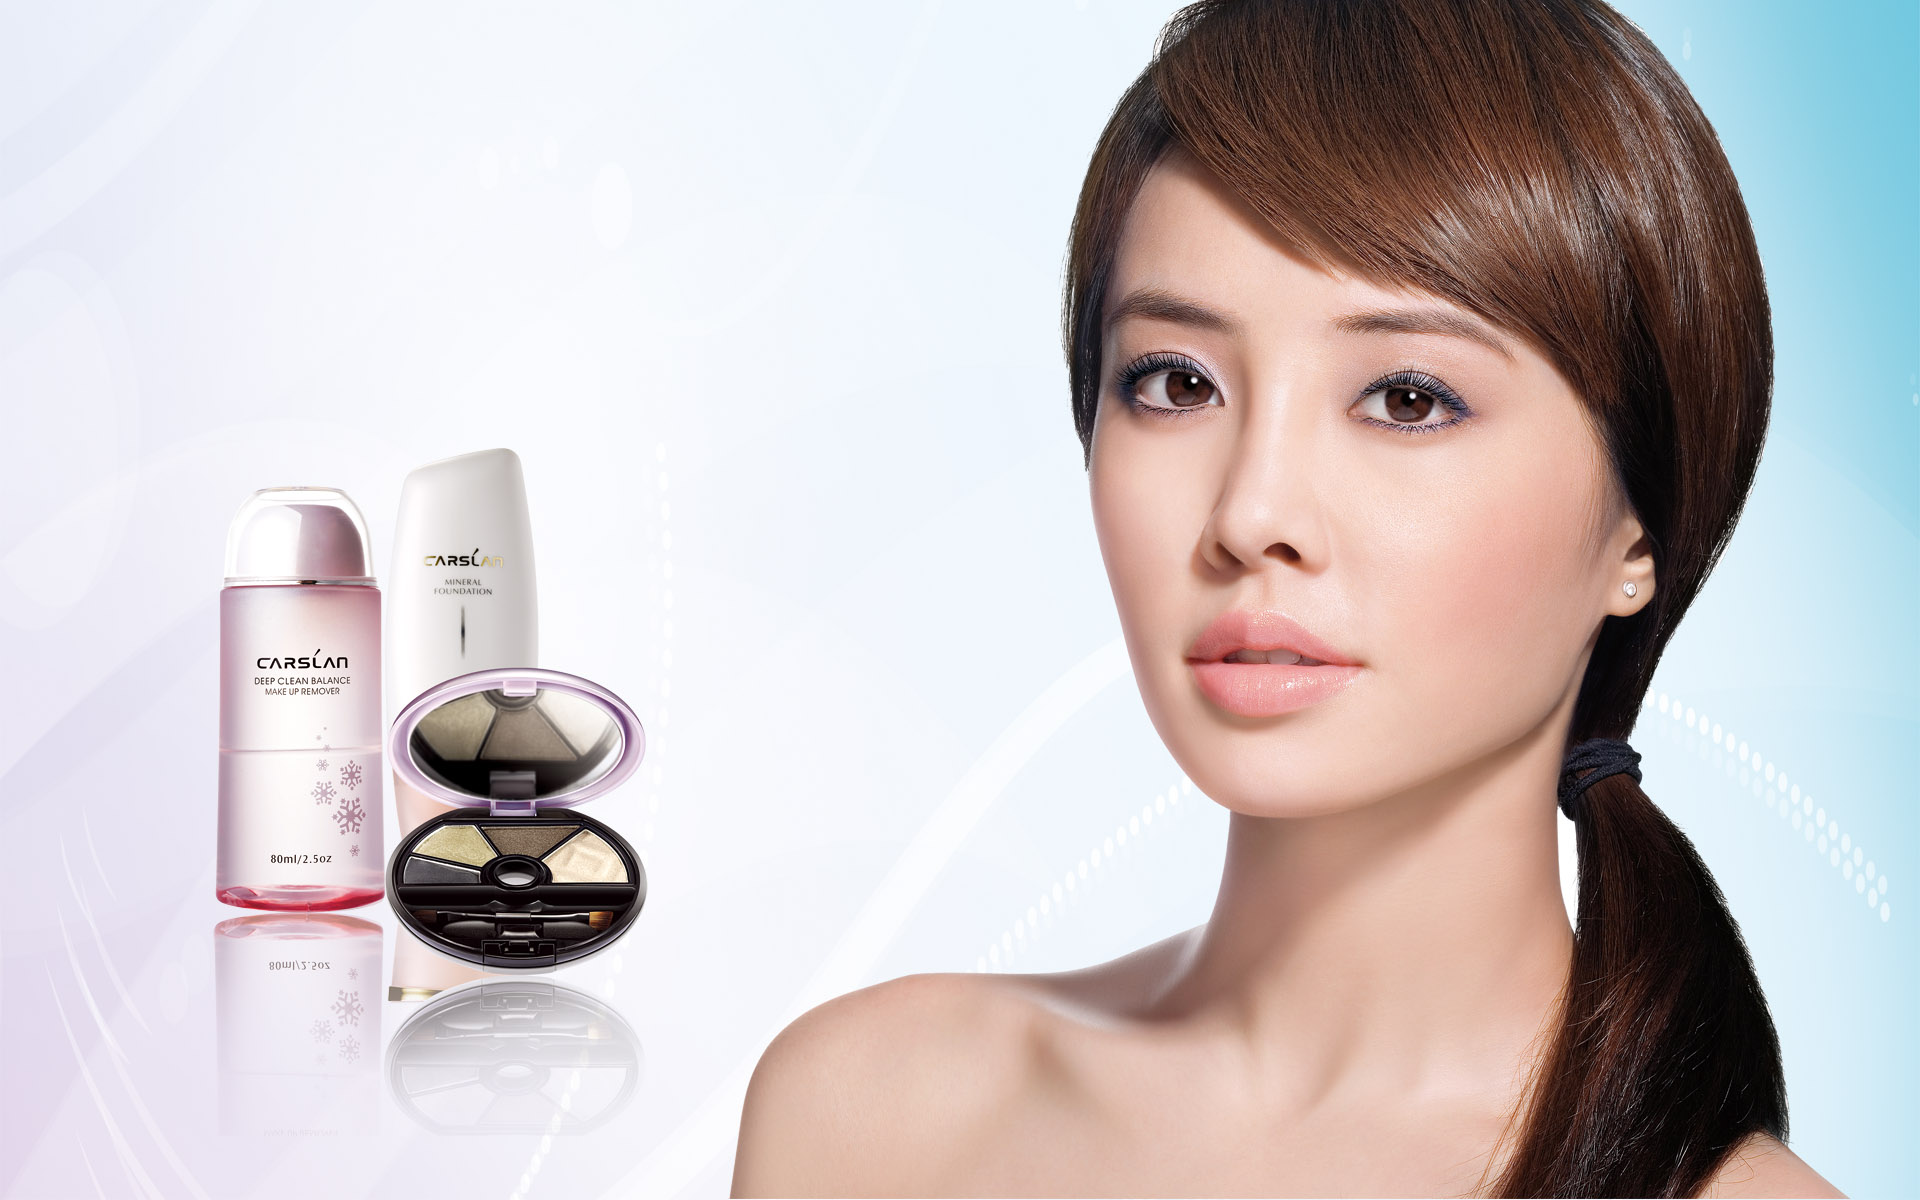 HD cosmetics ads wallpaper 2376